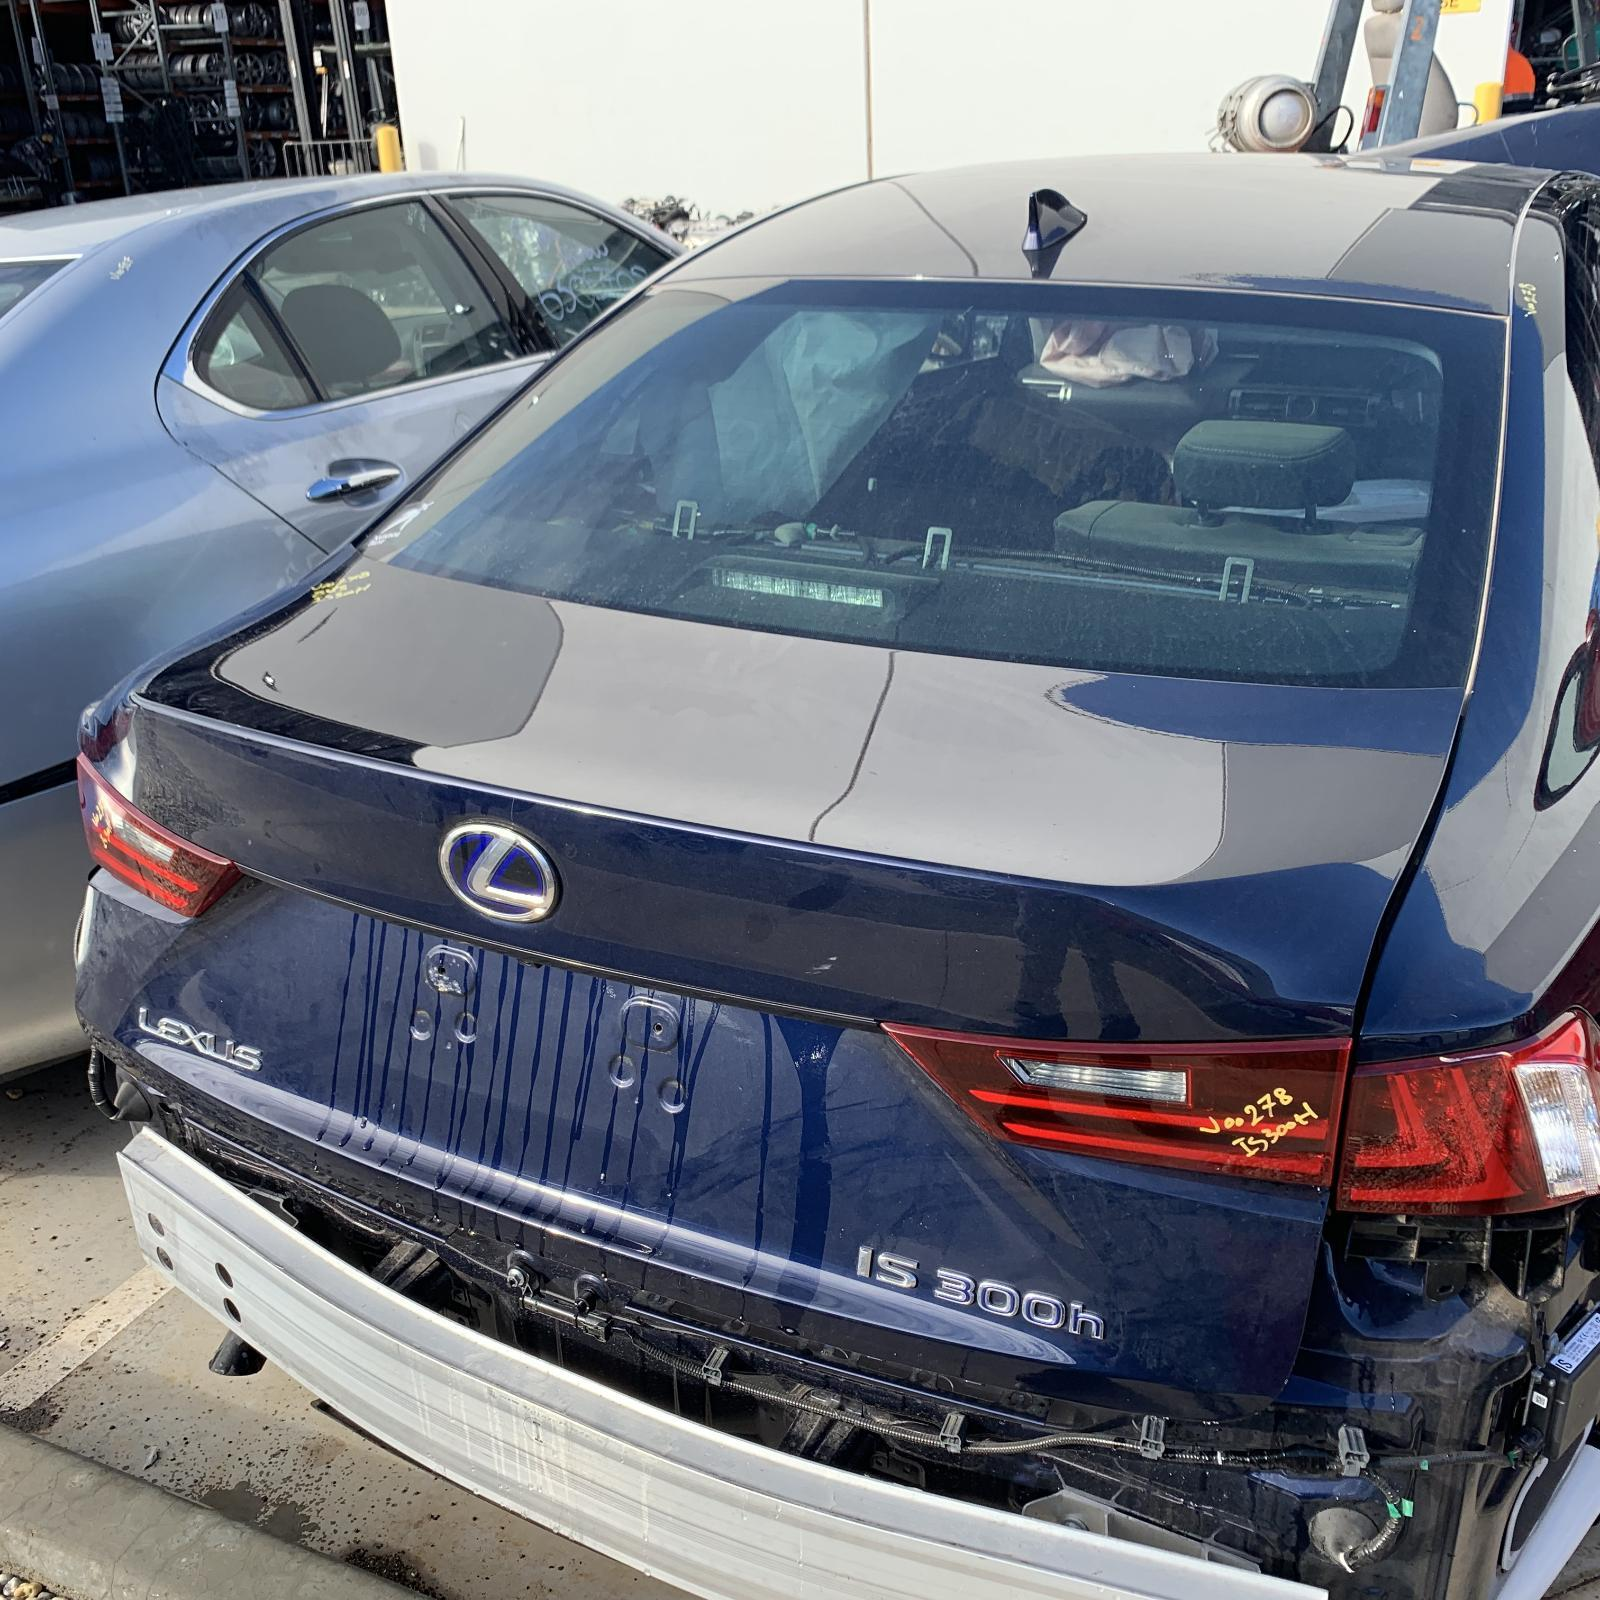 LEXUS IS, Bootlid/Tailgate, BOOTLID, XE30, IS200t/IS250/IS300h/IS350, 04/13-